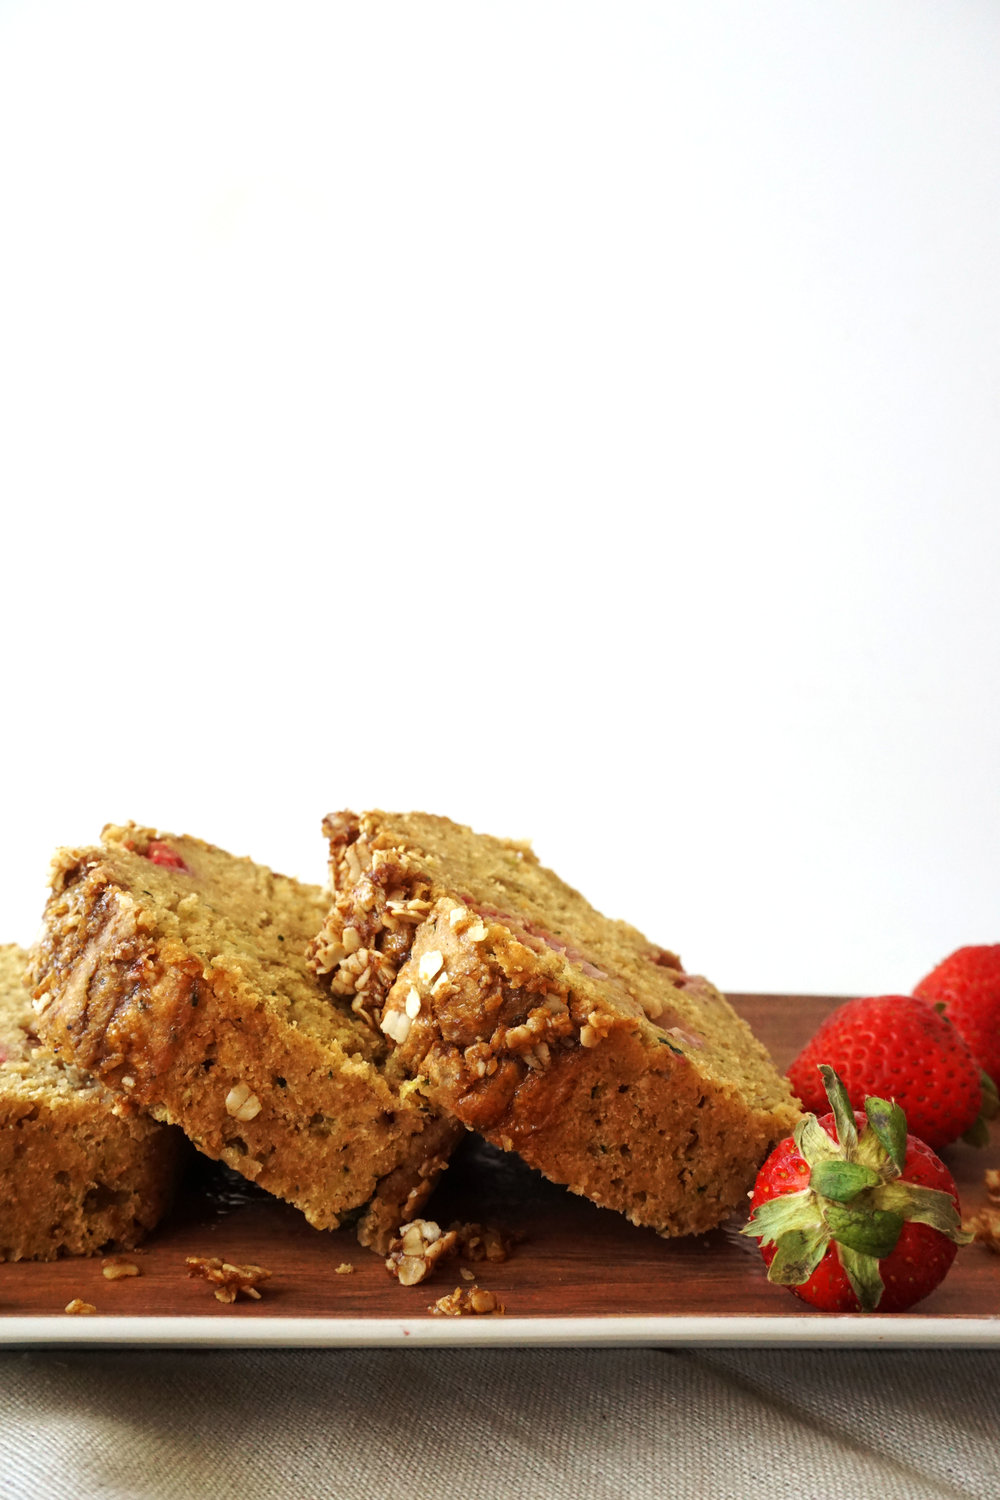 Whole-Wheat Zucchini Strawberry Crumble Bread (Dairy-free)